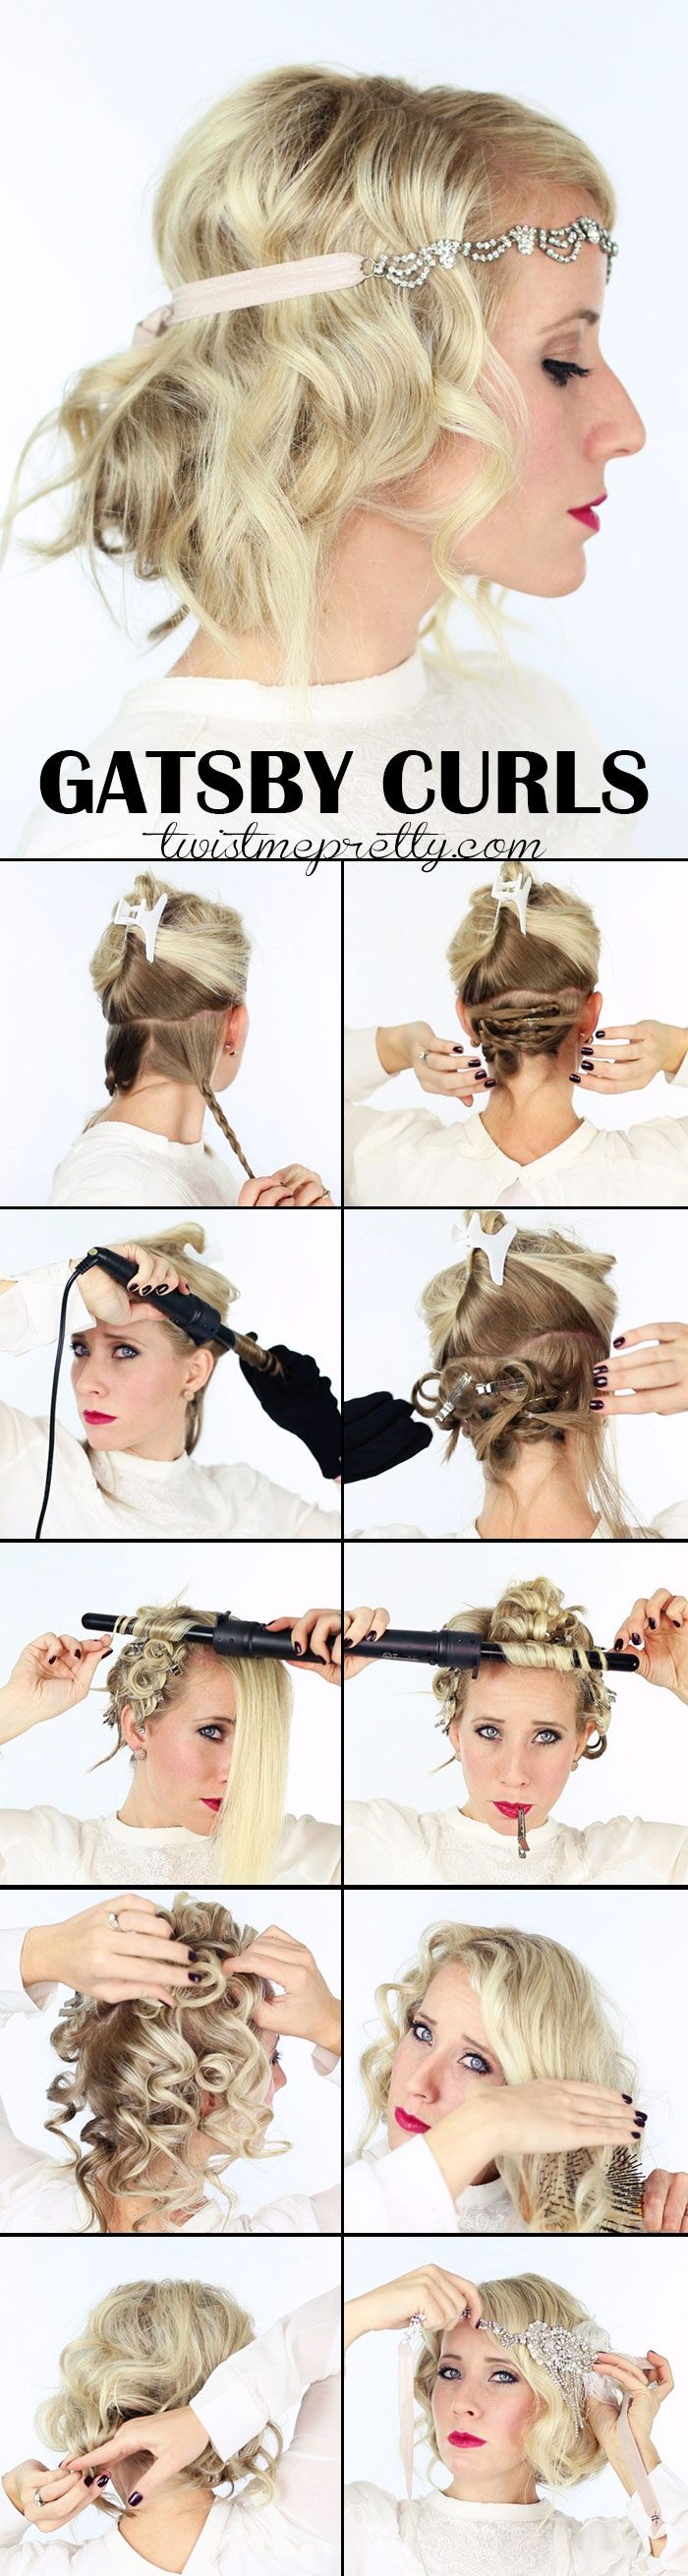 Surprising The Perfect Gatsby Curls For Your 1920 Flapper Girl Costume Come Hairstyle Inspiration Daily Dogsangcom